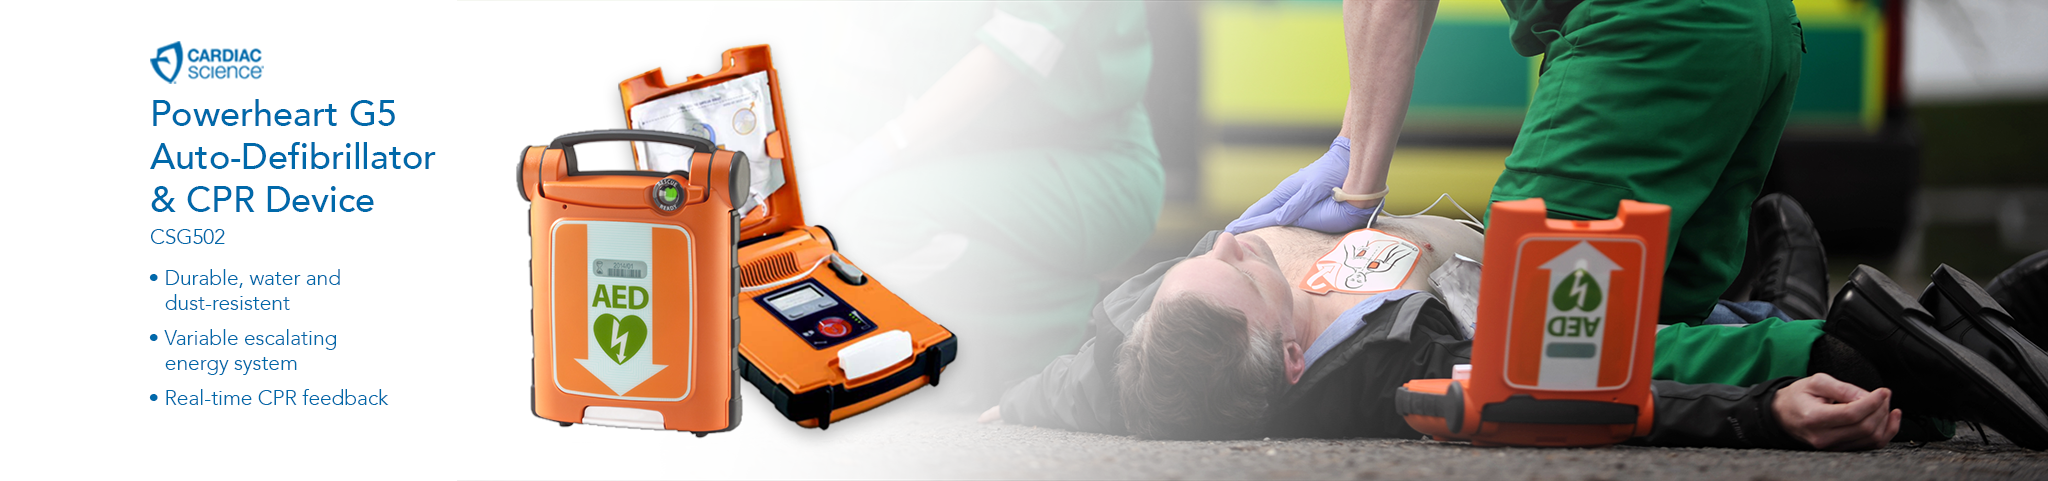 Powerheart G5 defibrillator, available for purchase from Fleming Medical Ireland